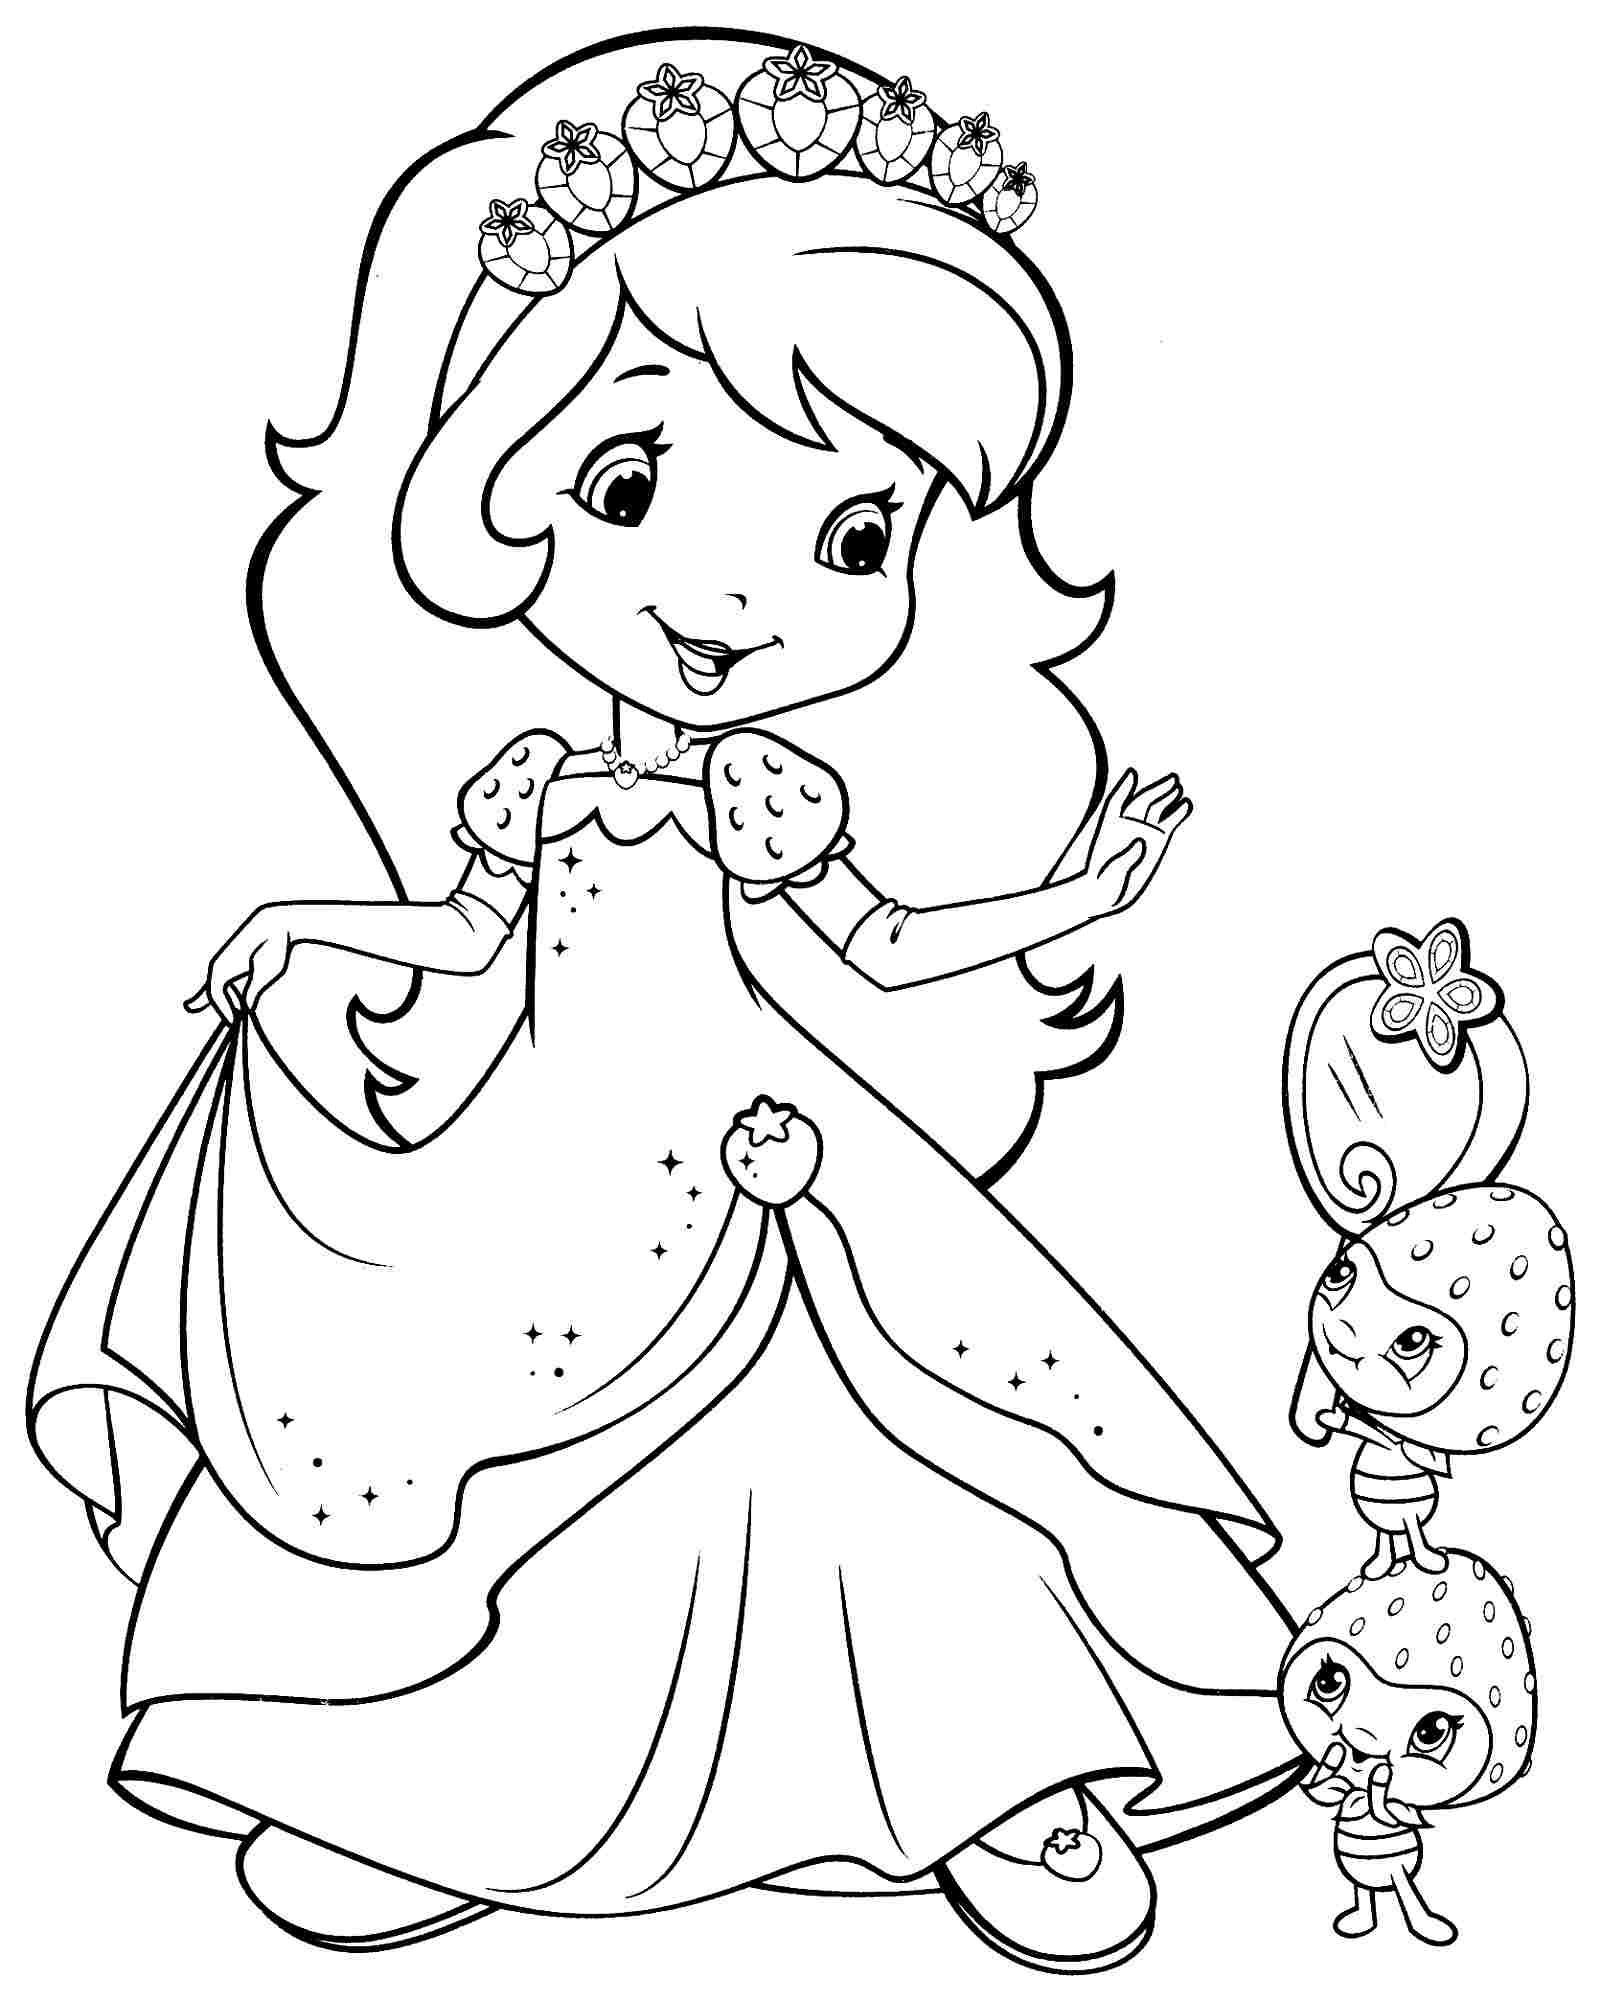 Strawberry Shortcake Cartoon Coloring Pages Free Cartoon